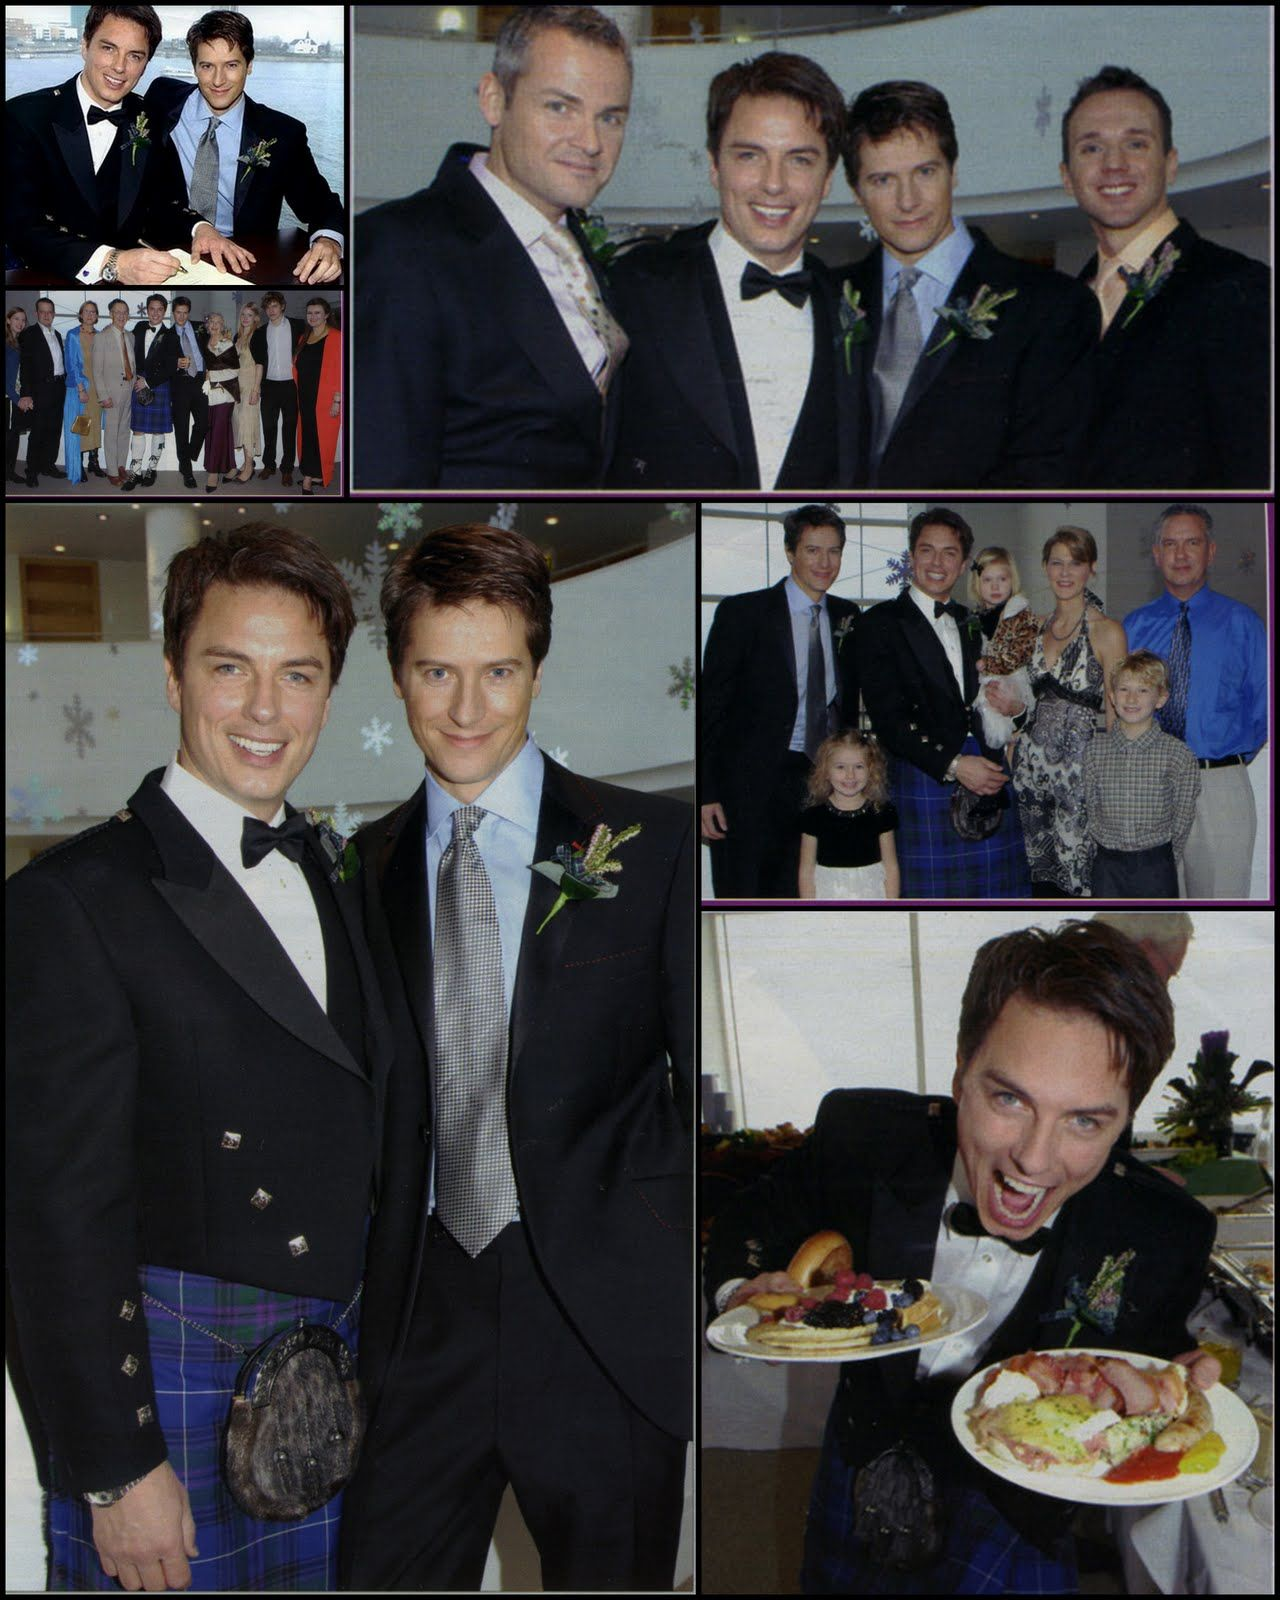 Scott Gill John Barrowman Wedding